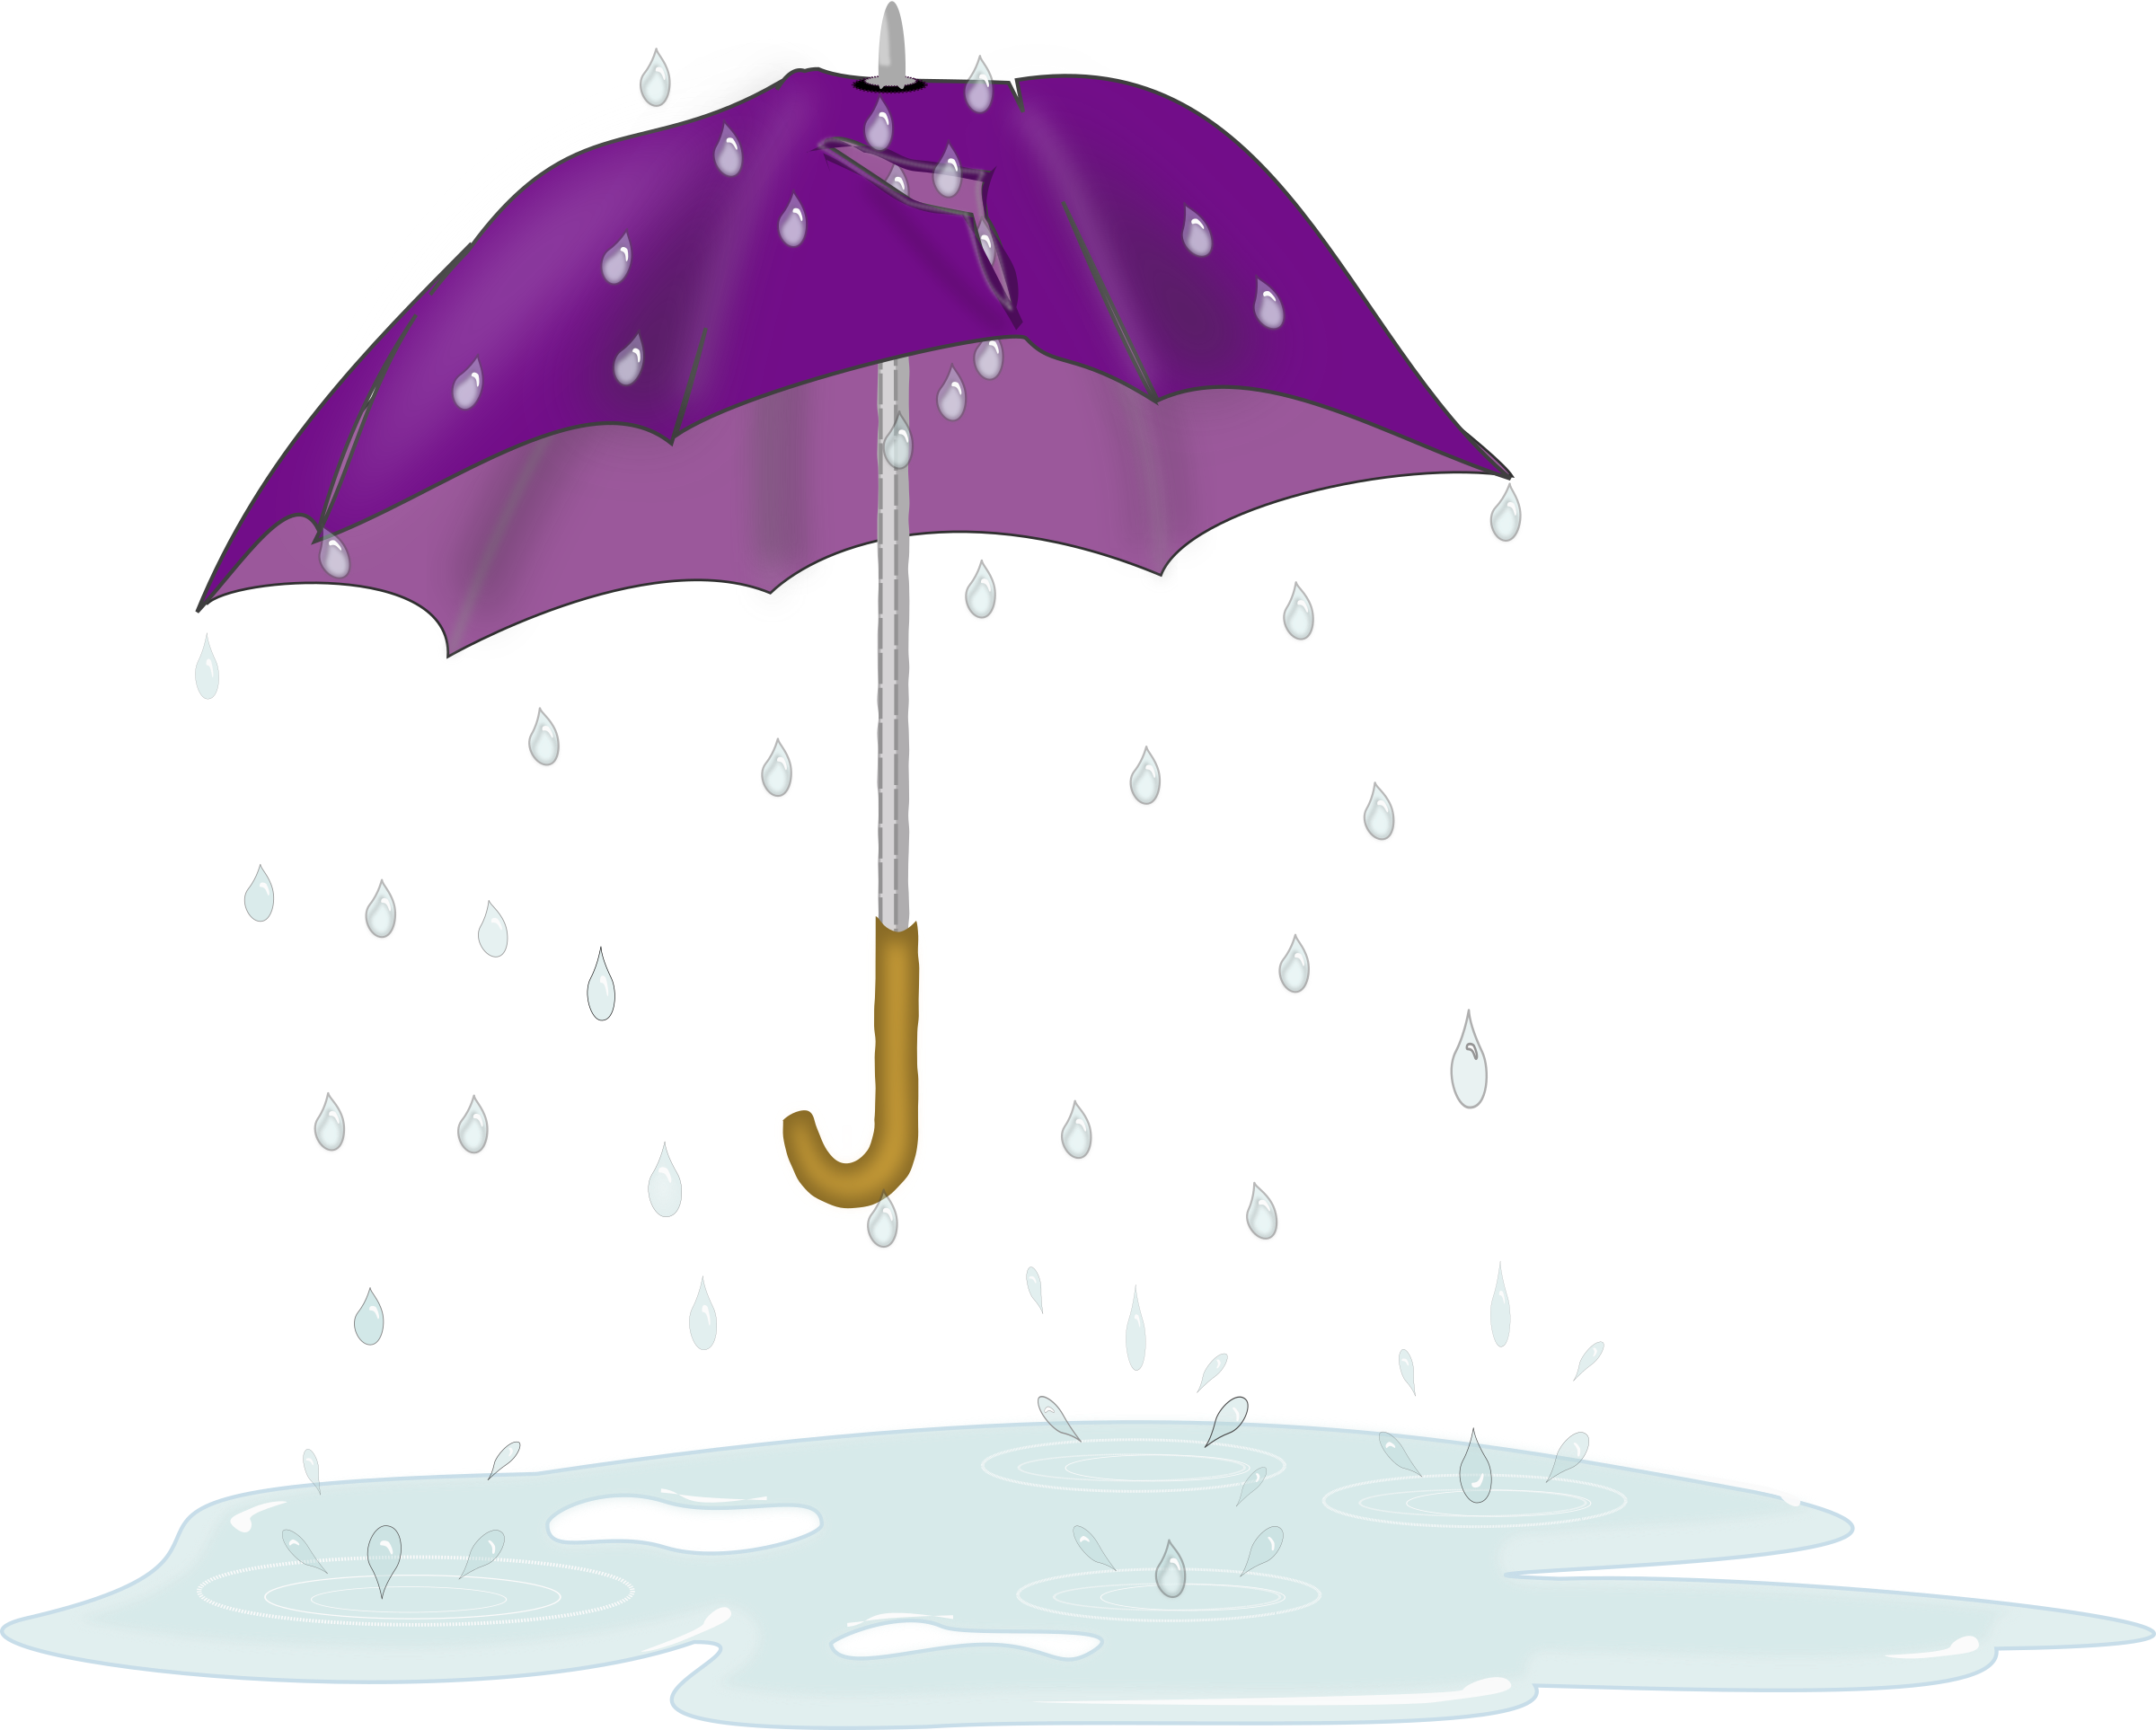 Tattered Umbrella in Rain by laurianne